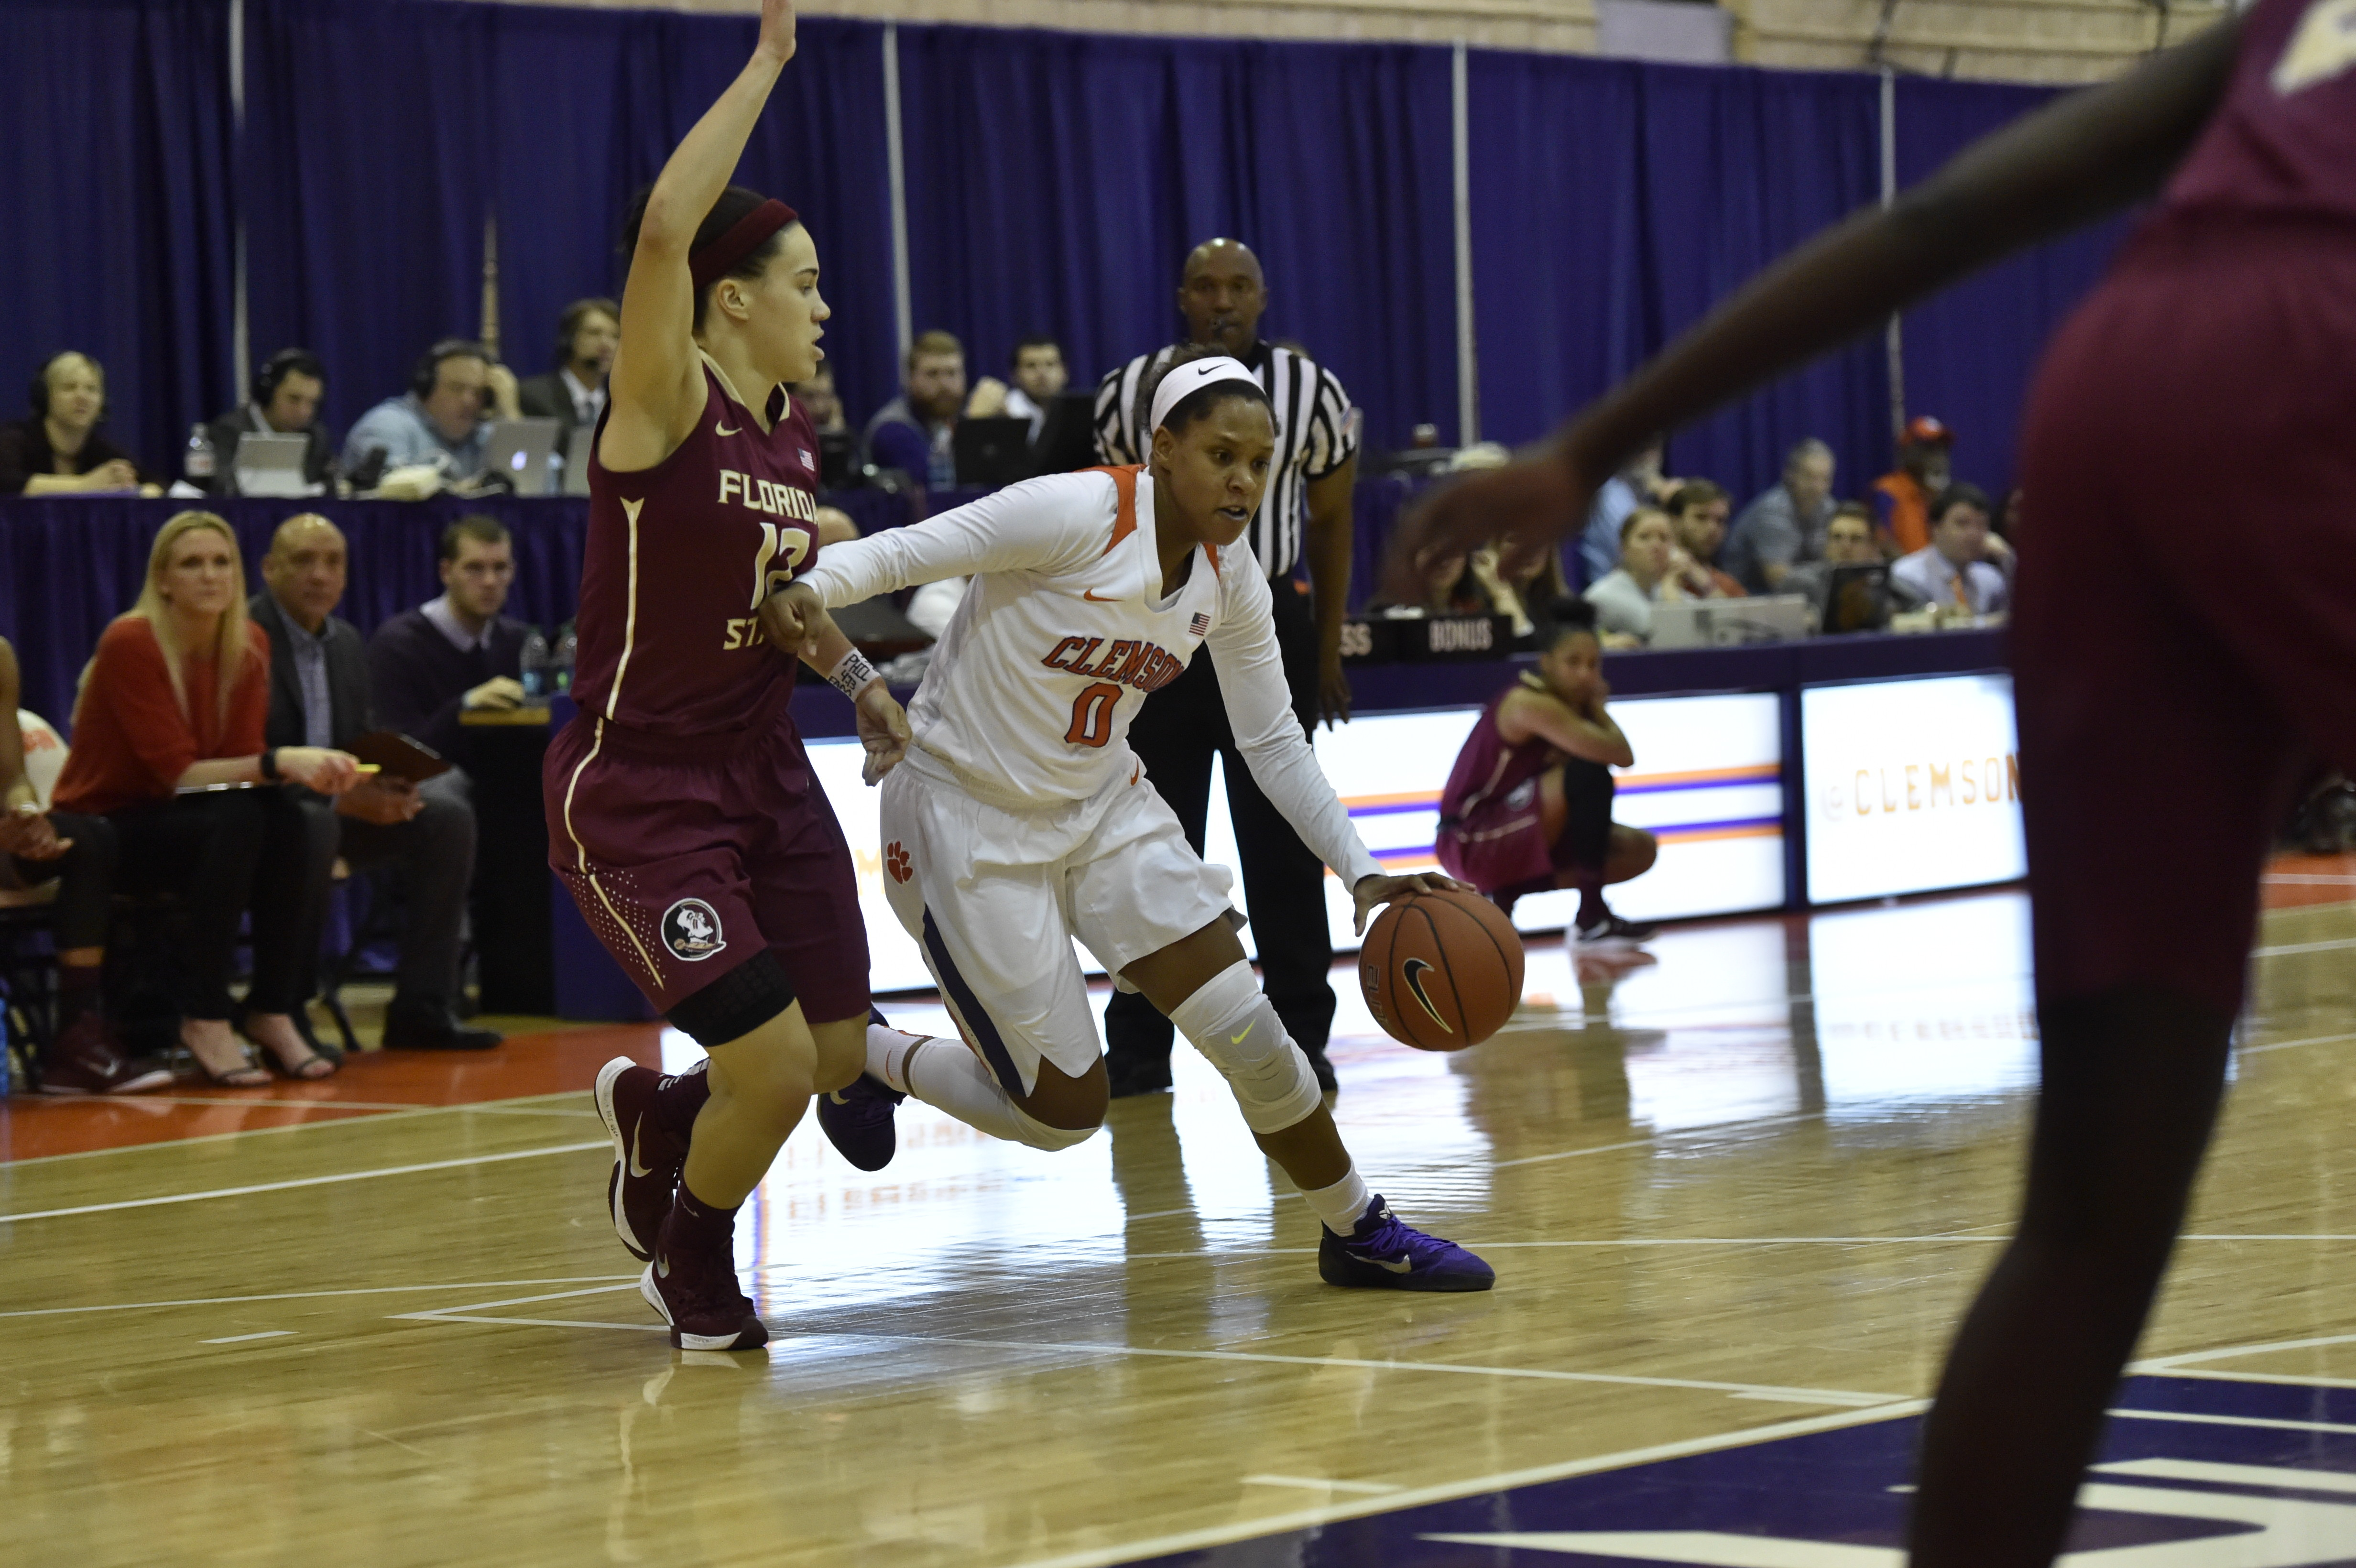 Lady Tigers Fall to #16 Florida State